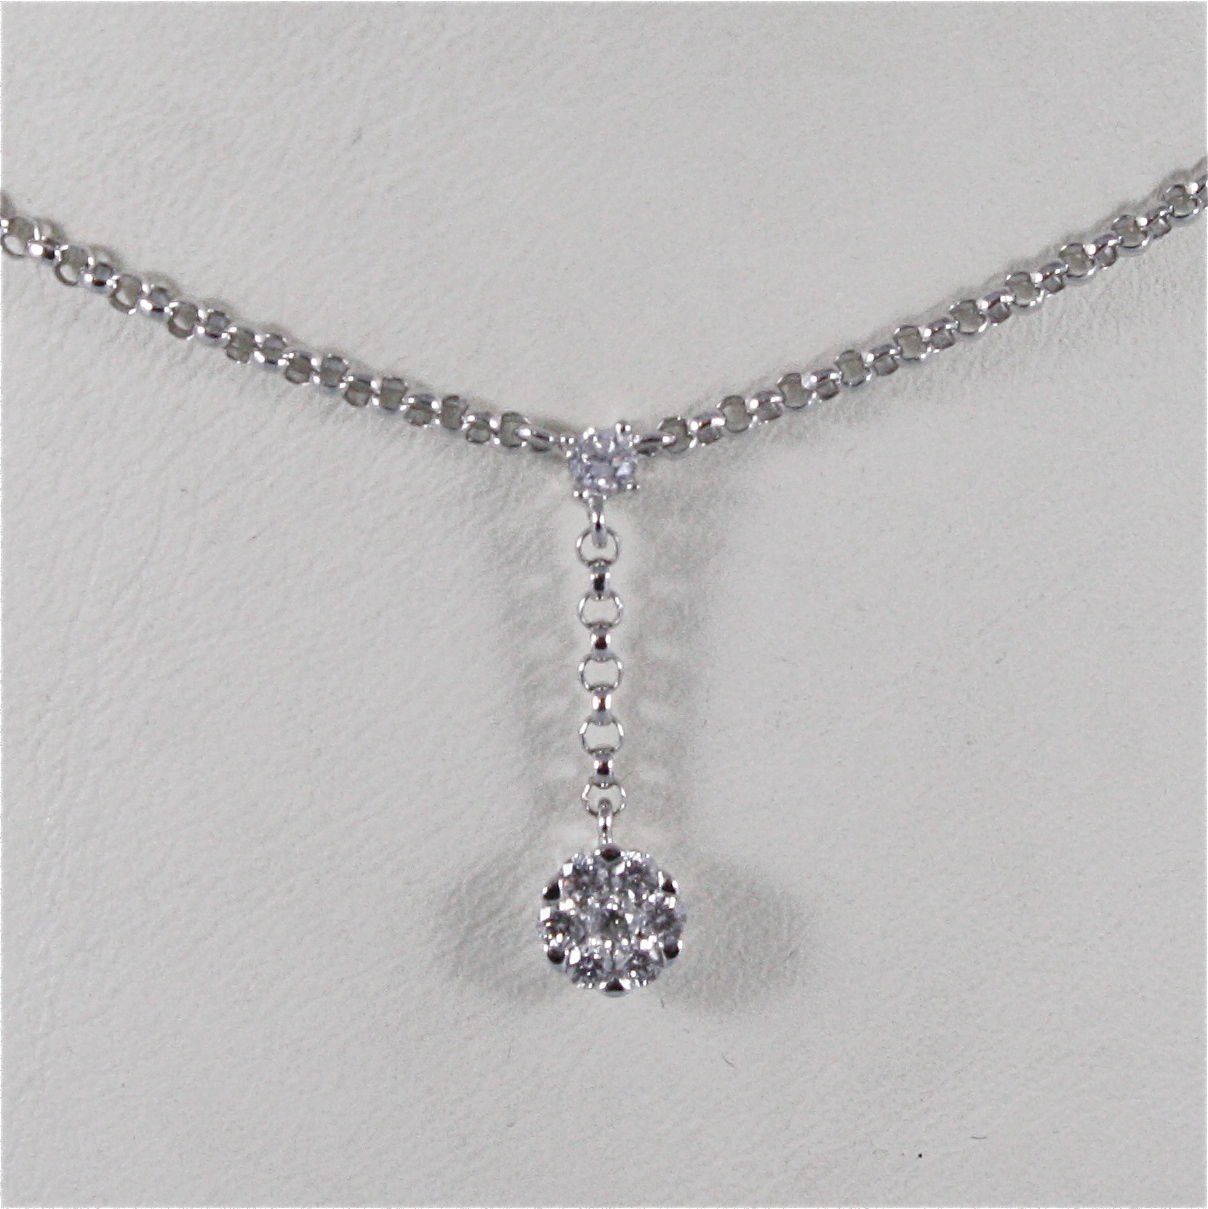 18K WHITE GOLD NECKLACE, FLOWER PENDANT WITH DIAMONDS CT 0.23, MADE IN ITALY